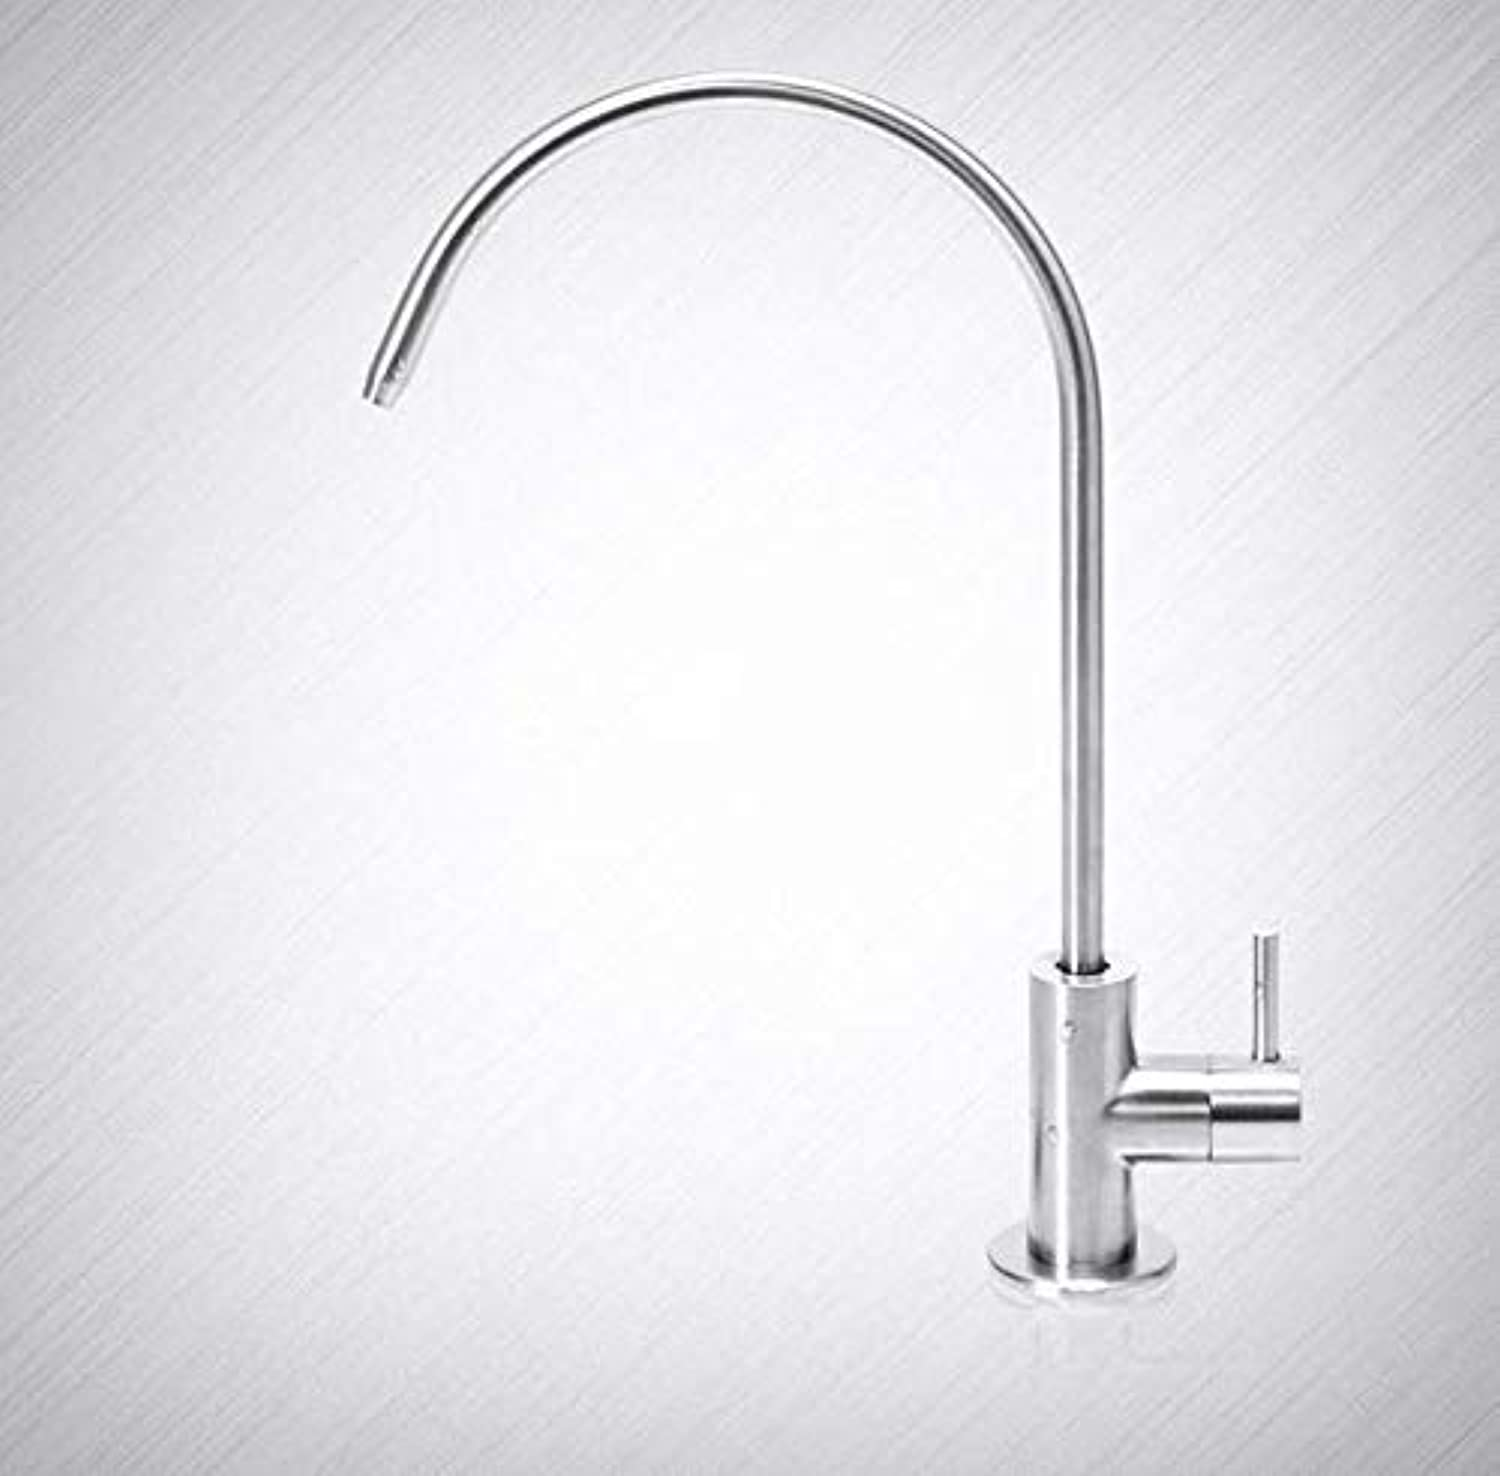 Bathroom Faucet Stainless Steel Water Purifier Straight Drinking Faucet?Single Cold Household Water Purifier Pure Faucet